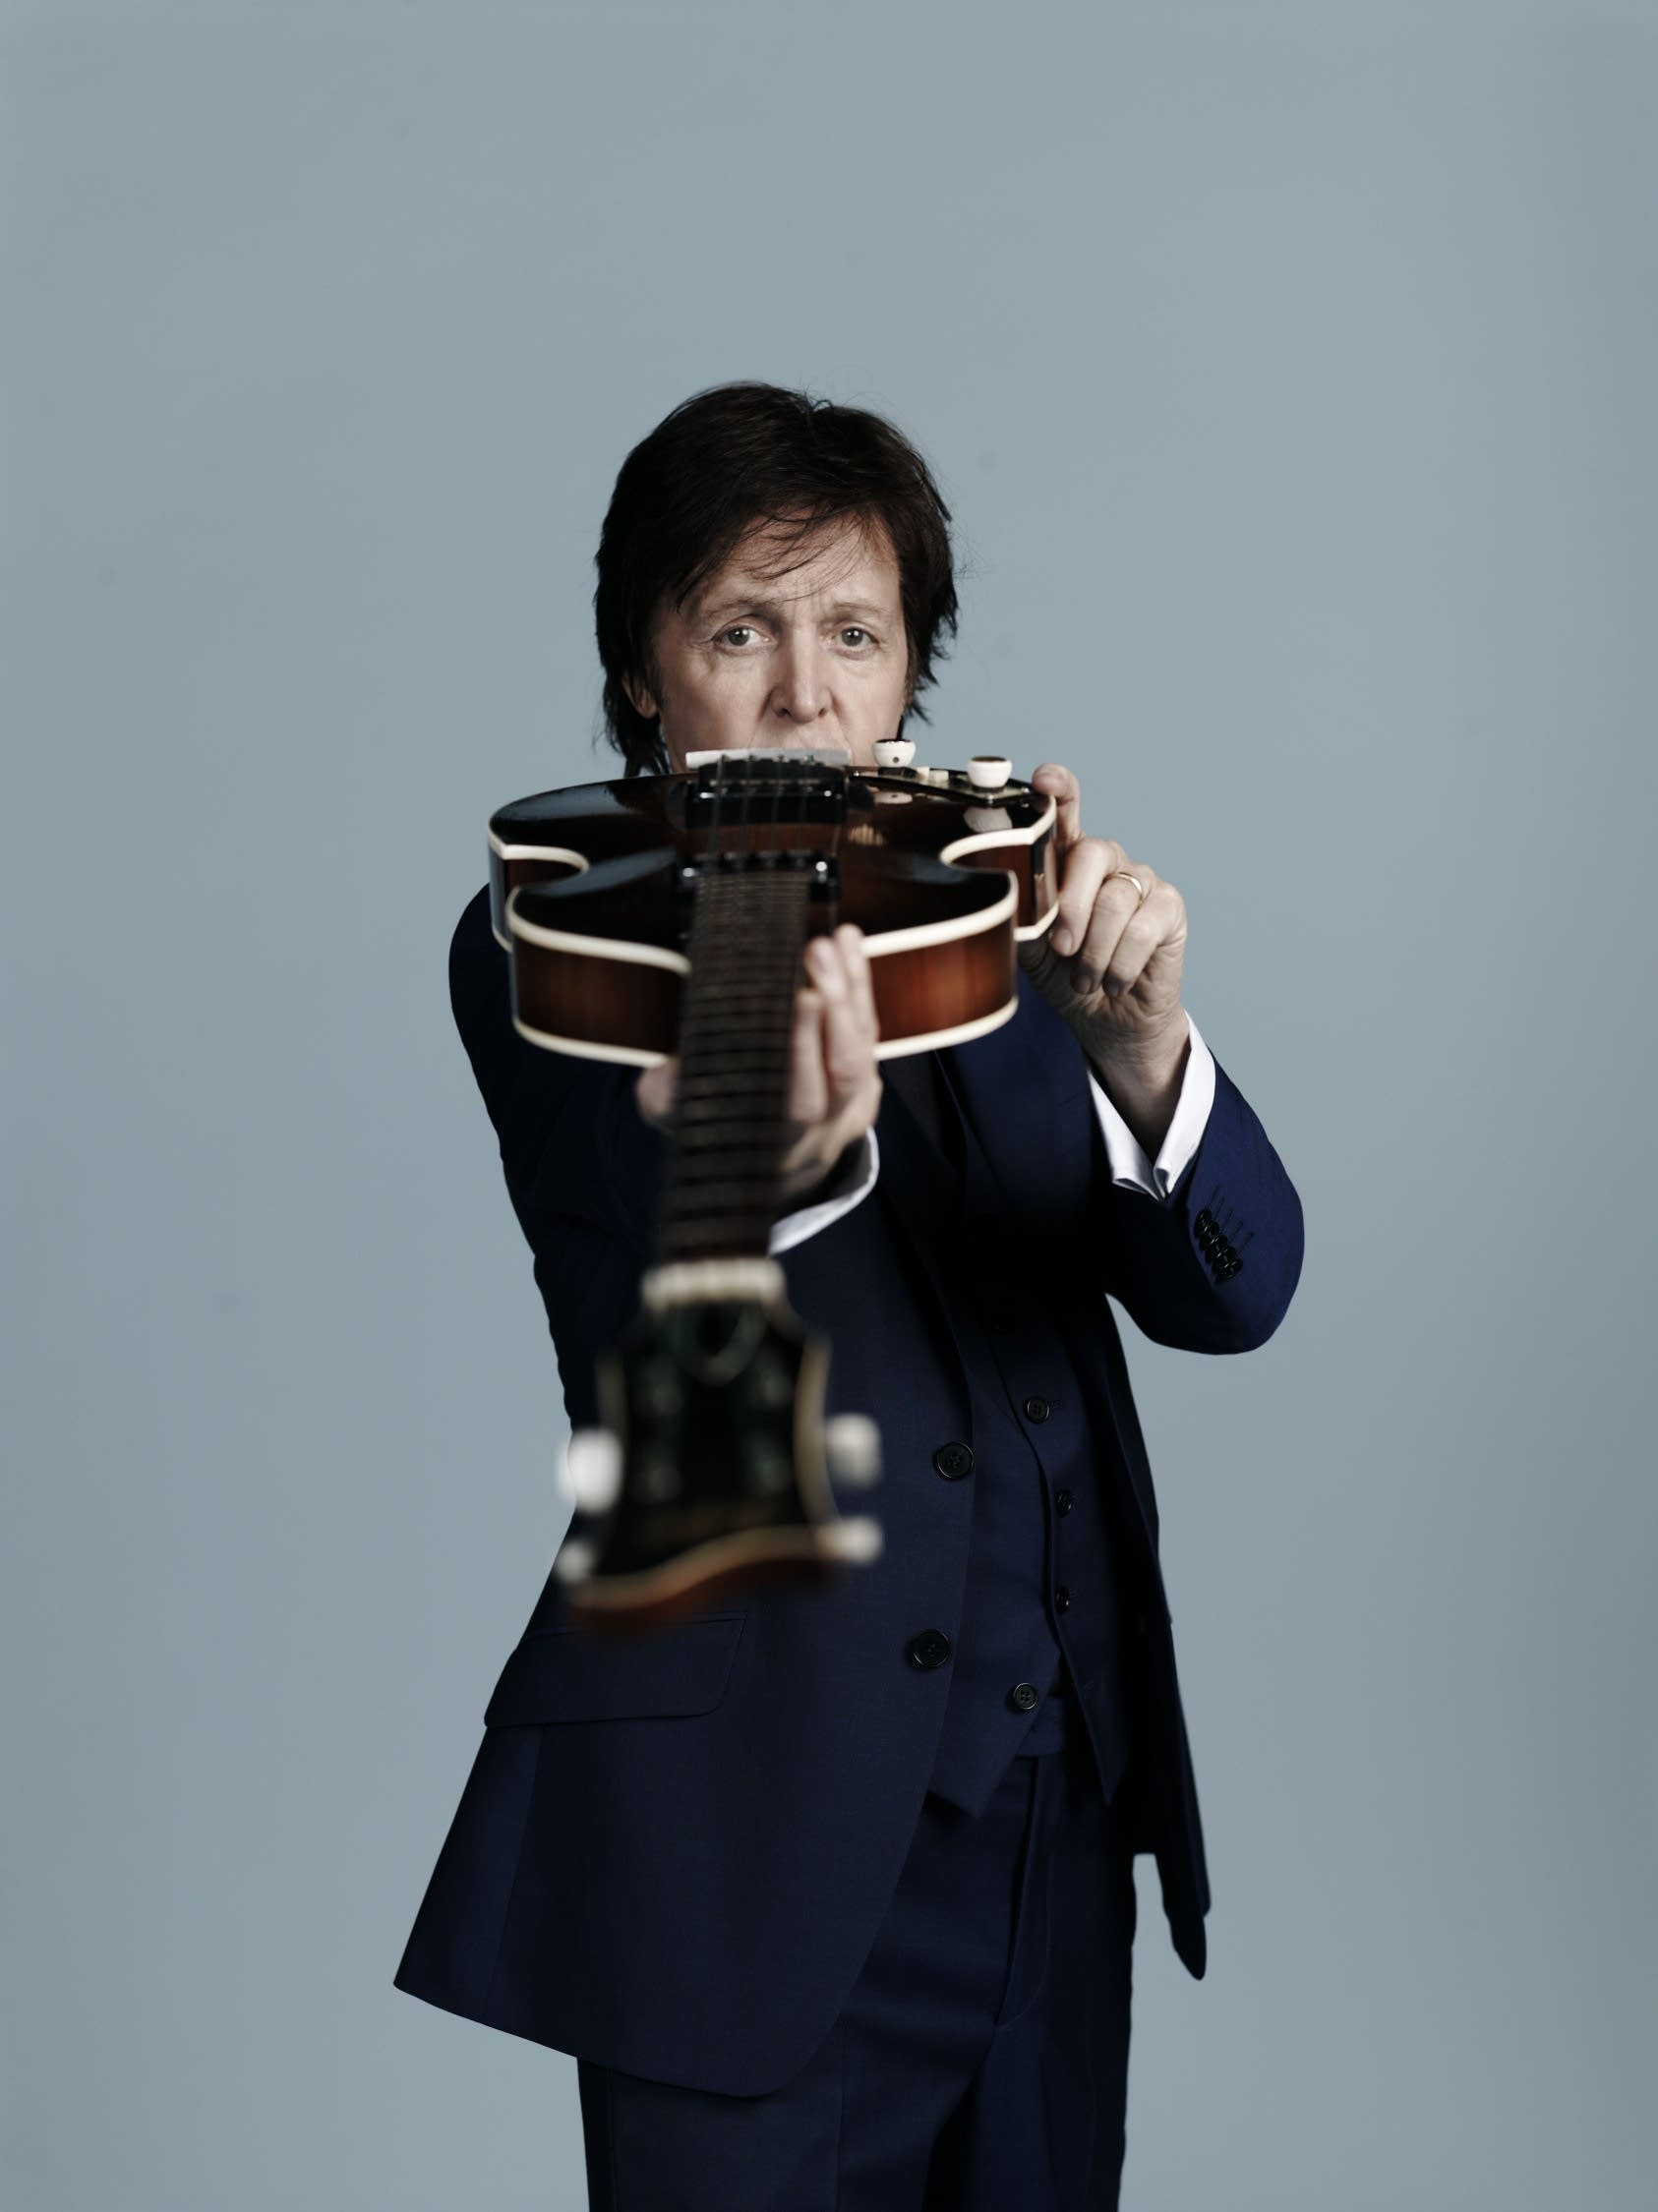 paul mccartney, press photo, new